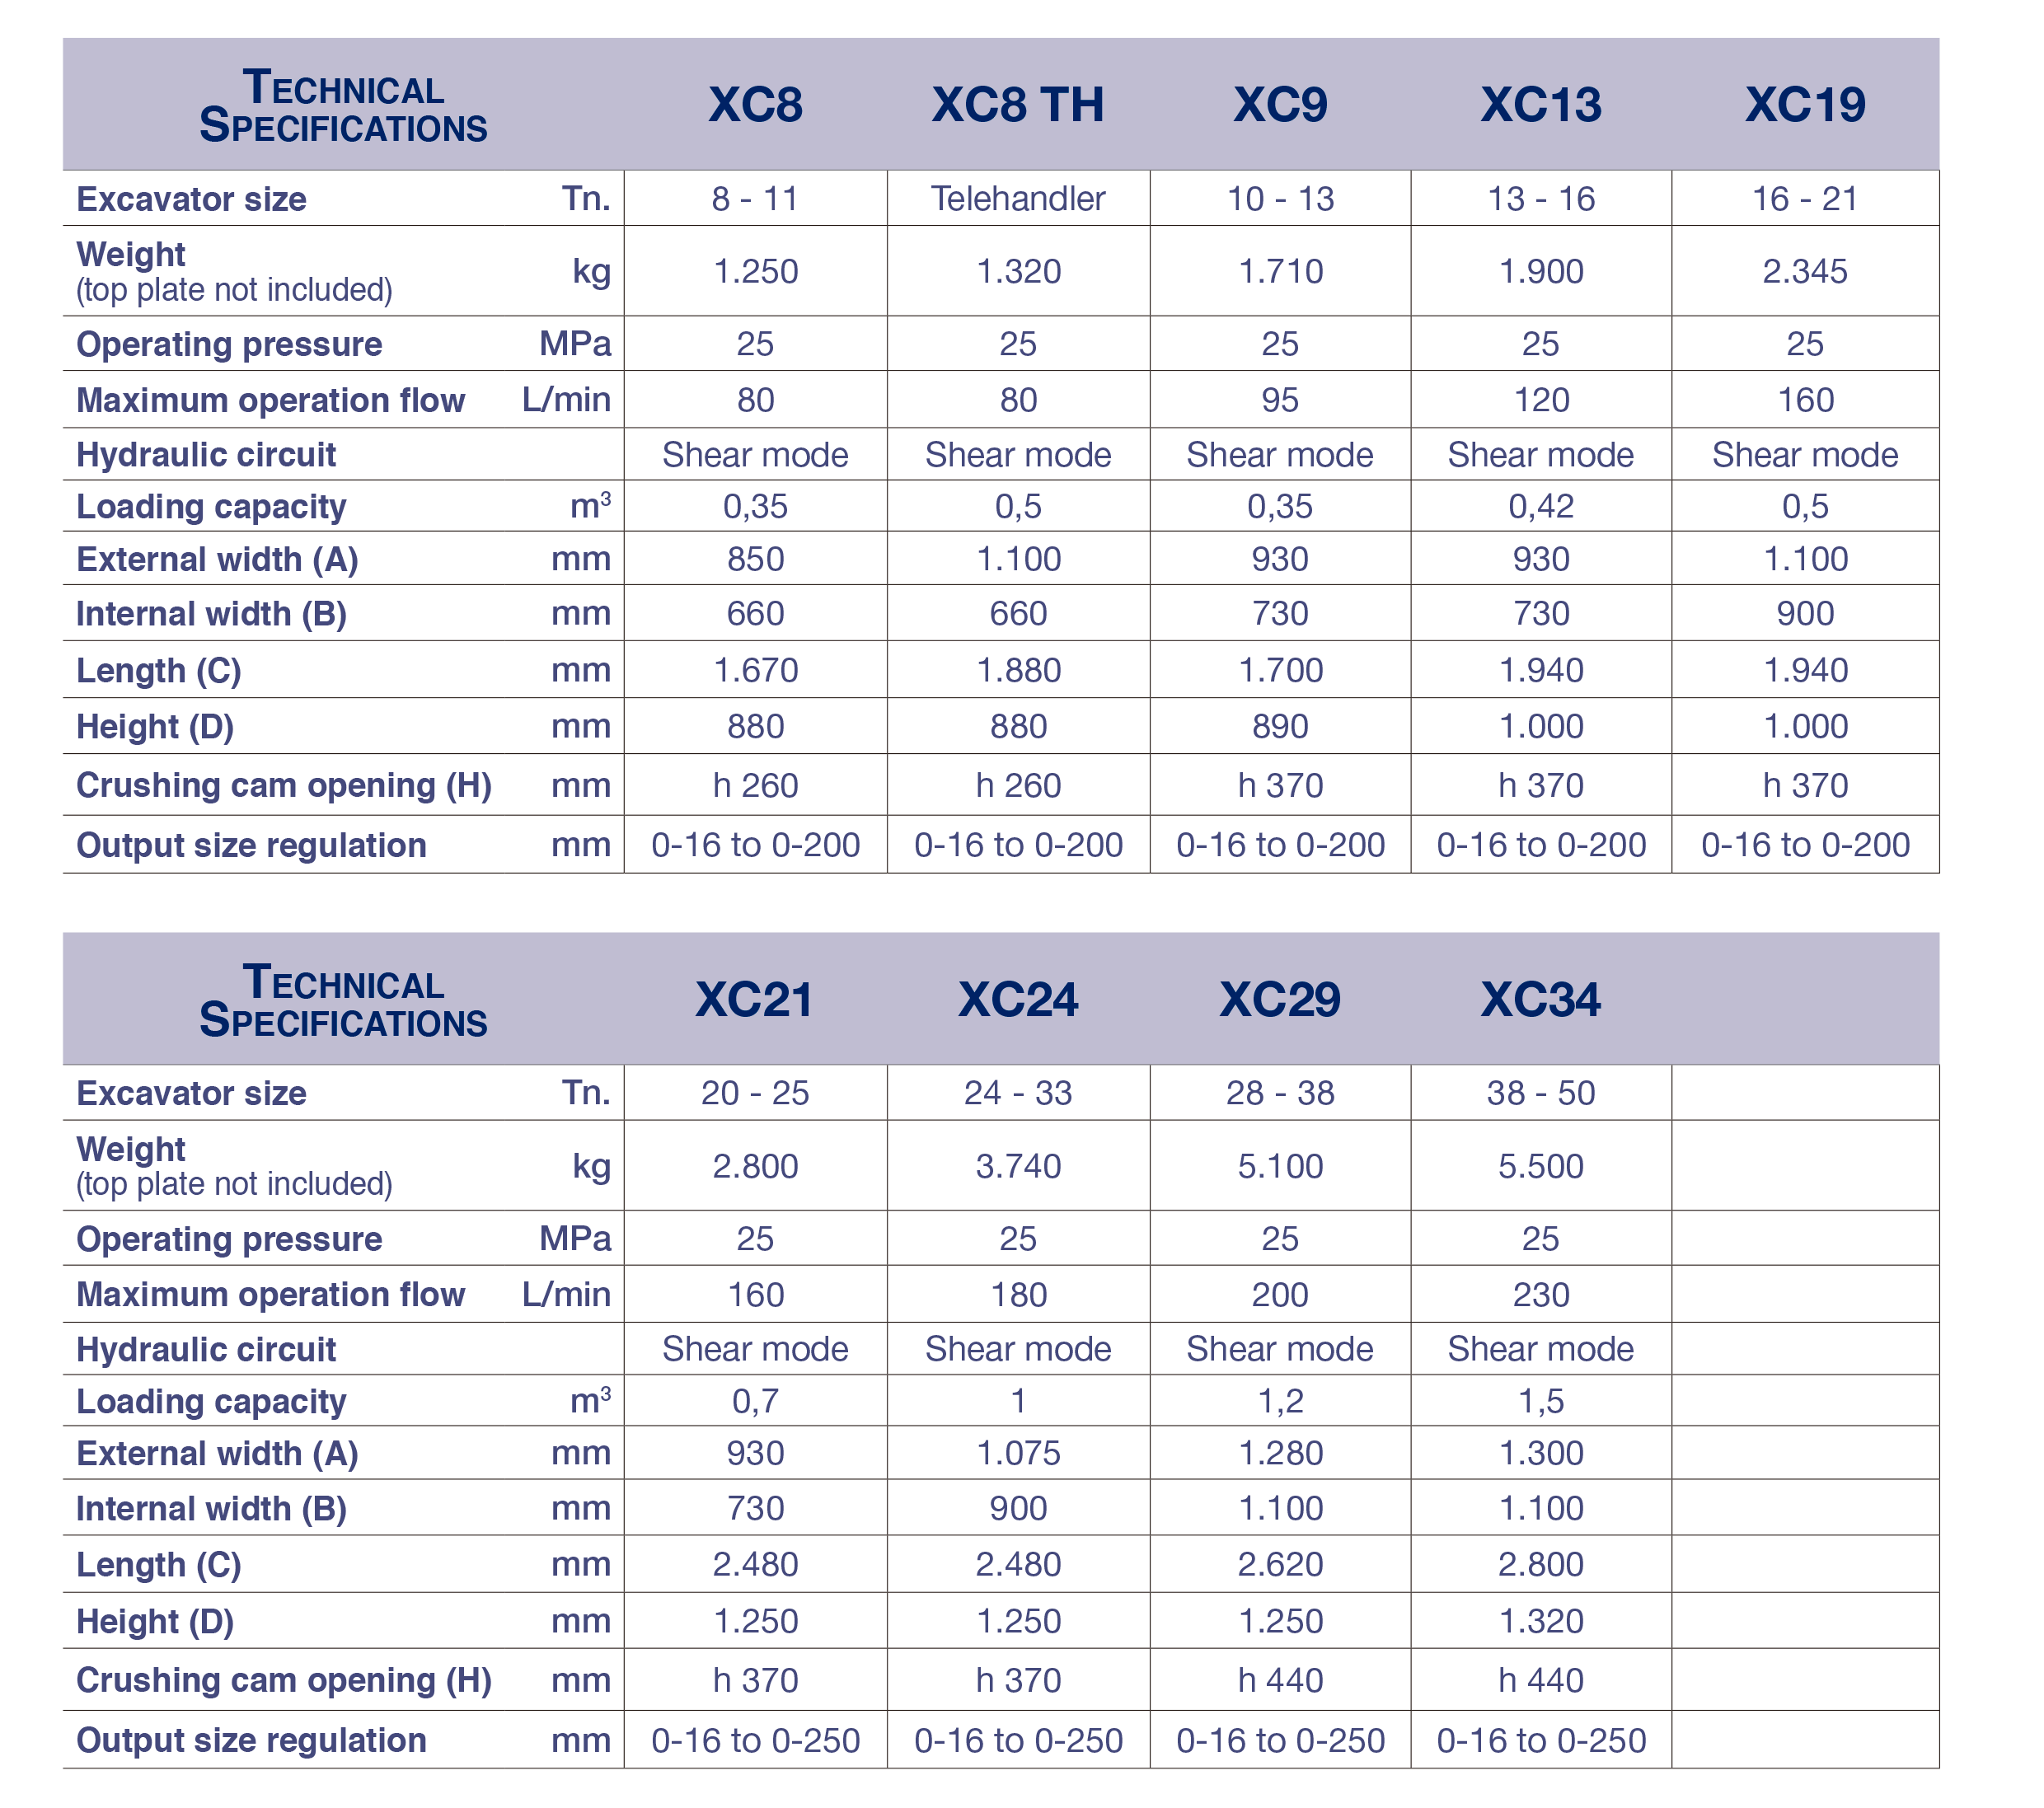 XC SERIES 'A' TECHNICAL SPECIFICATIONS